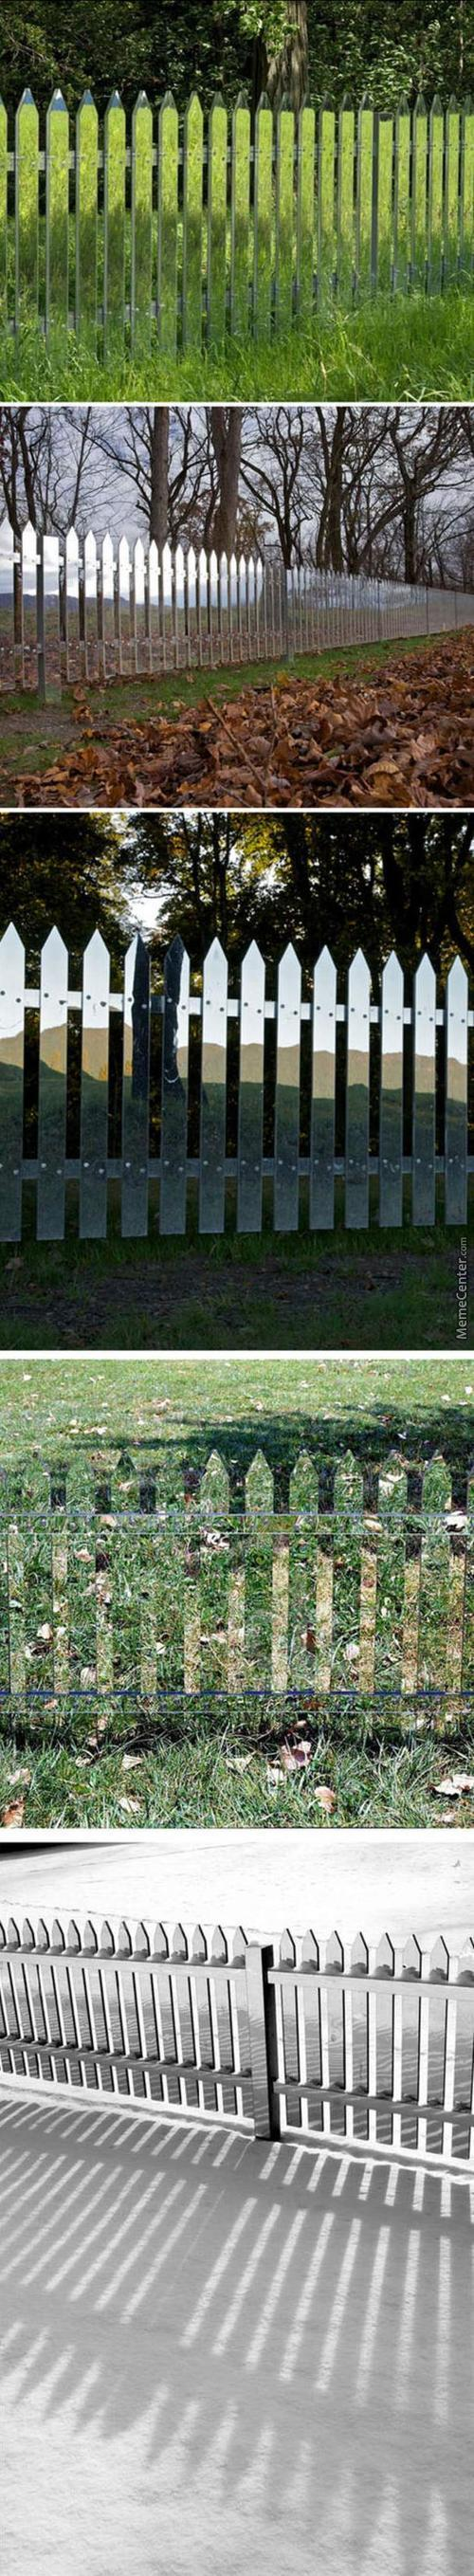 Transparent Fence